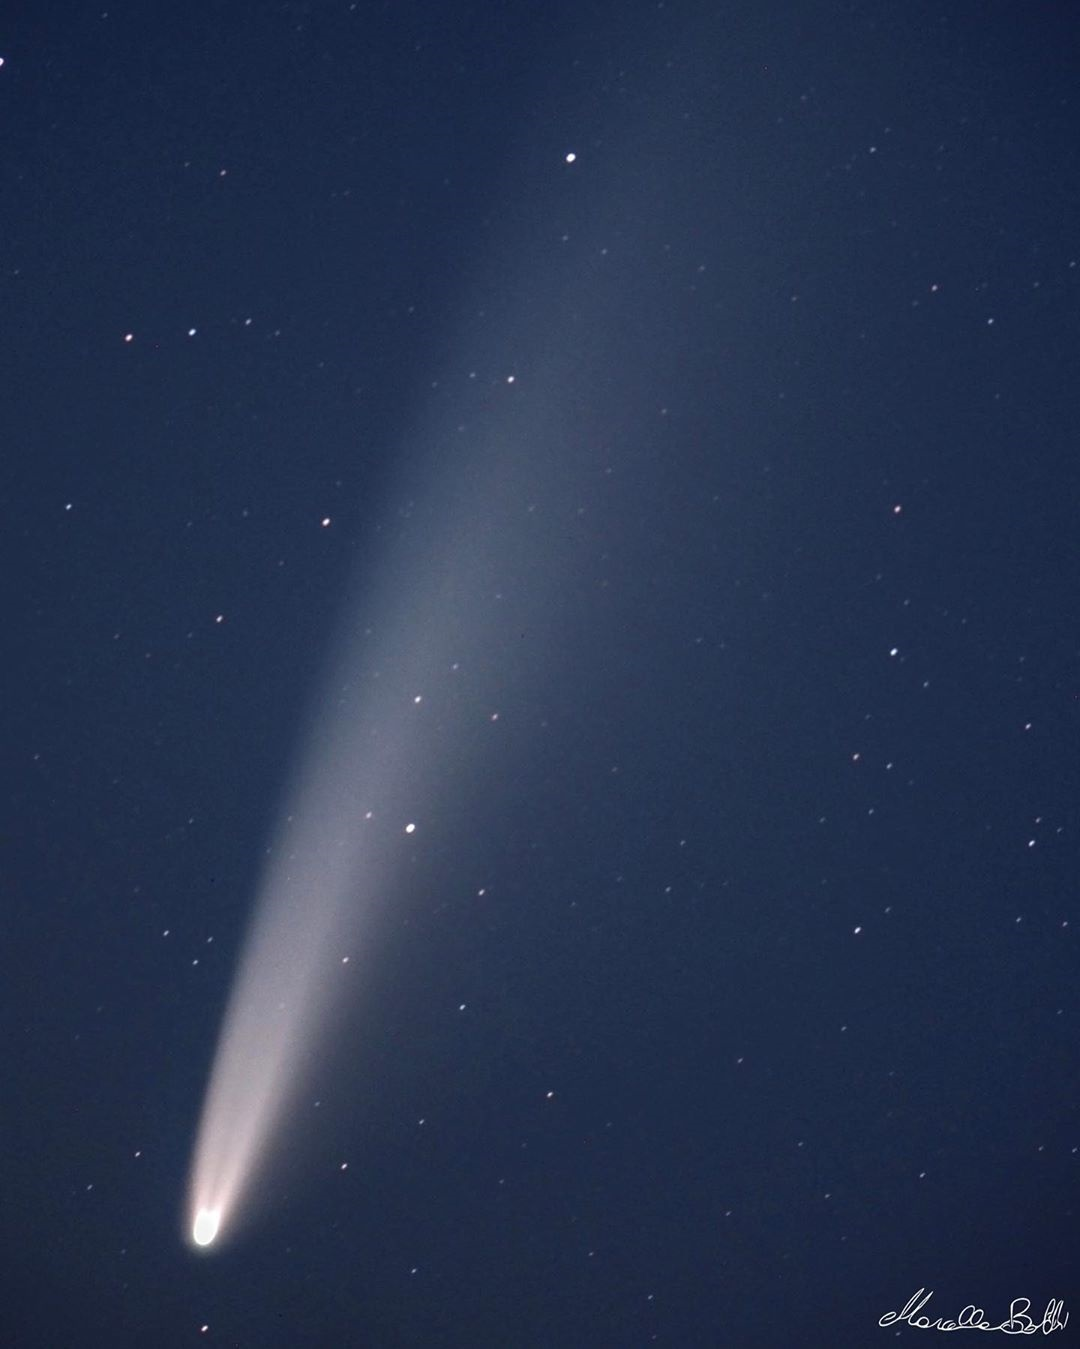 Comet NEOWISE in the Northern Skies!